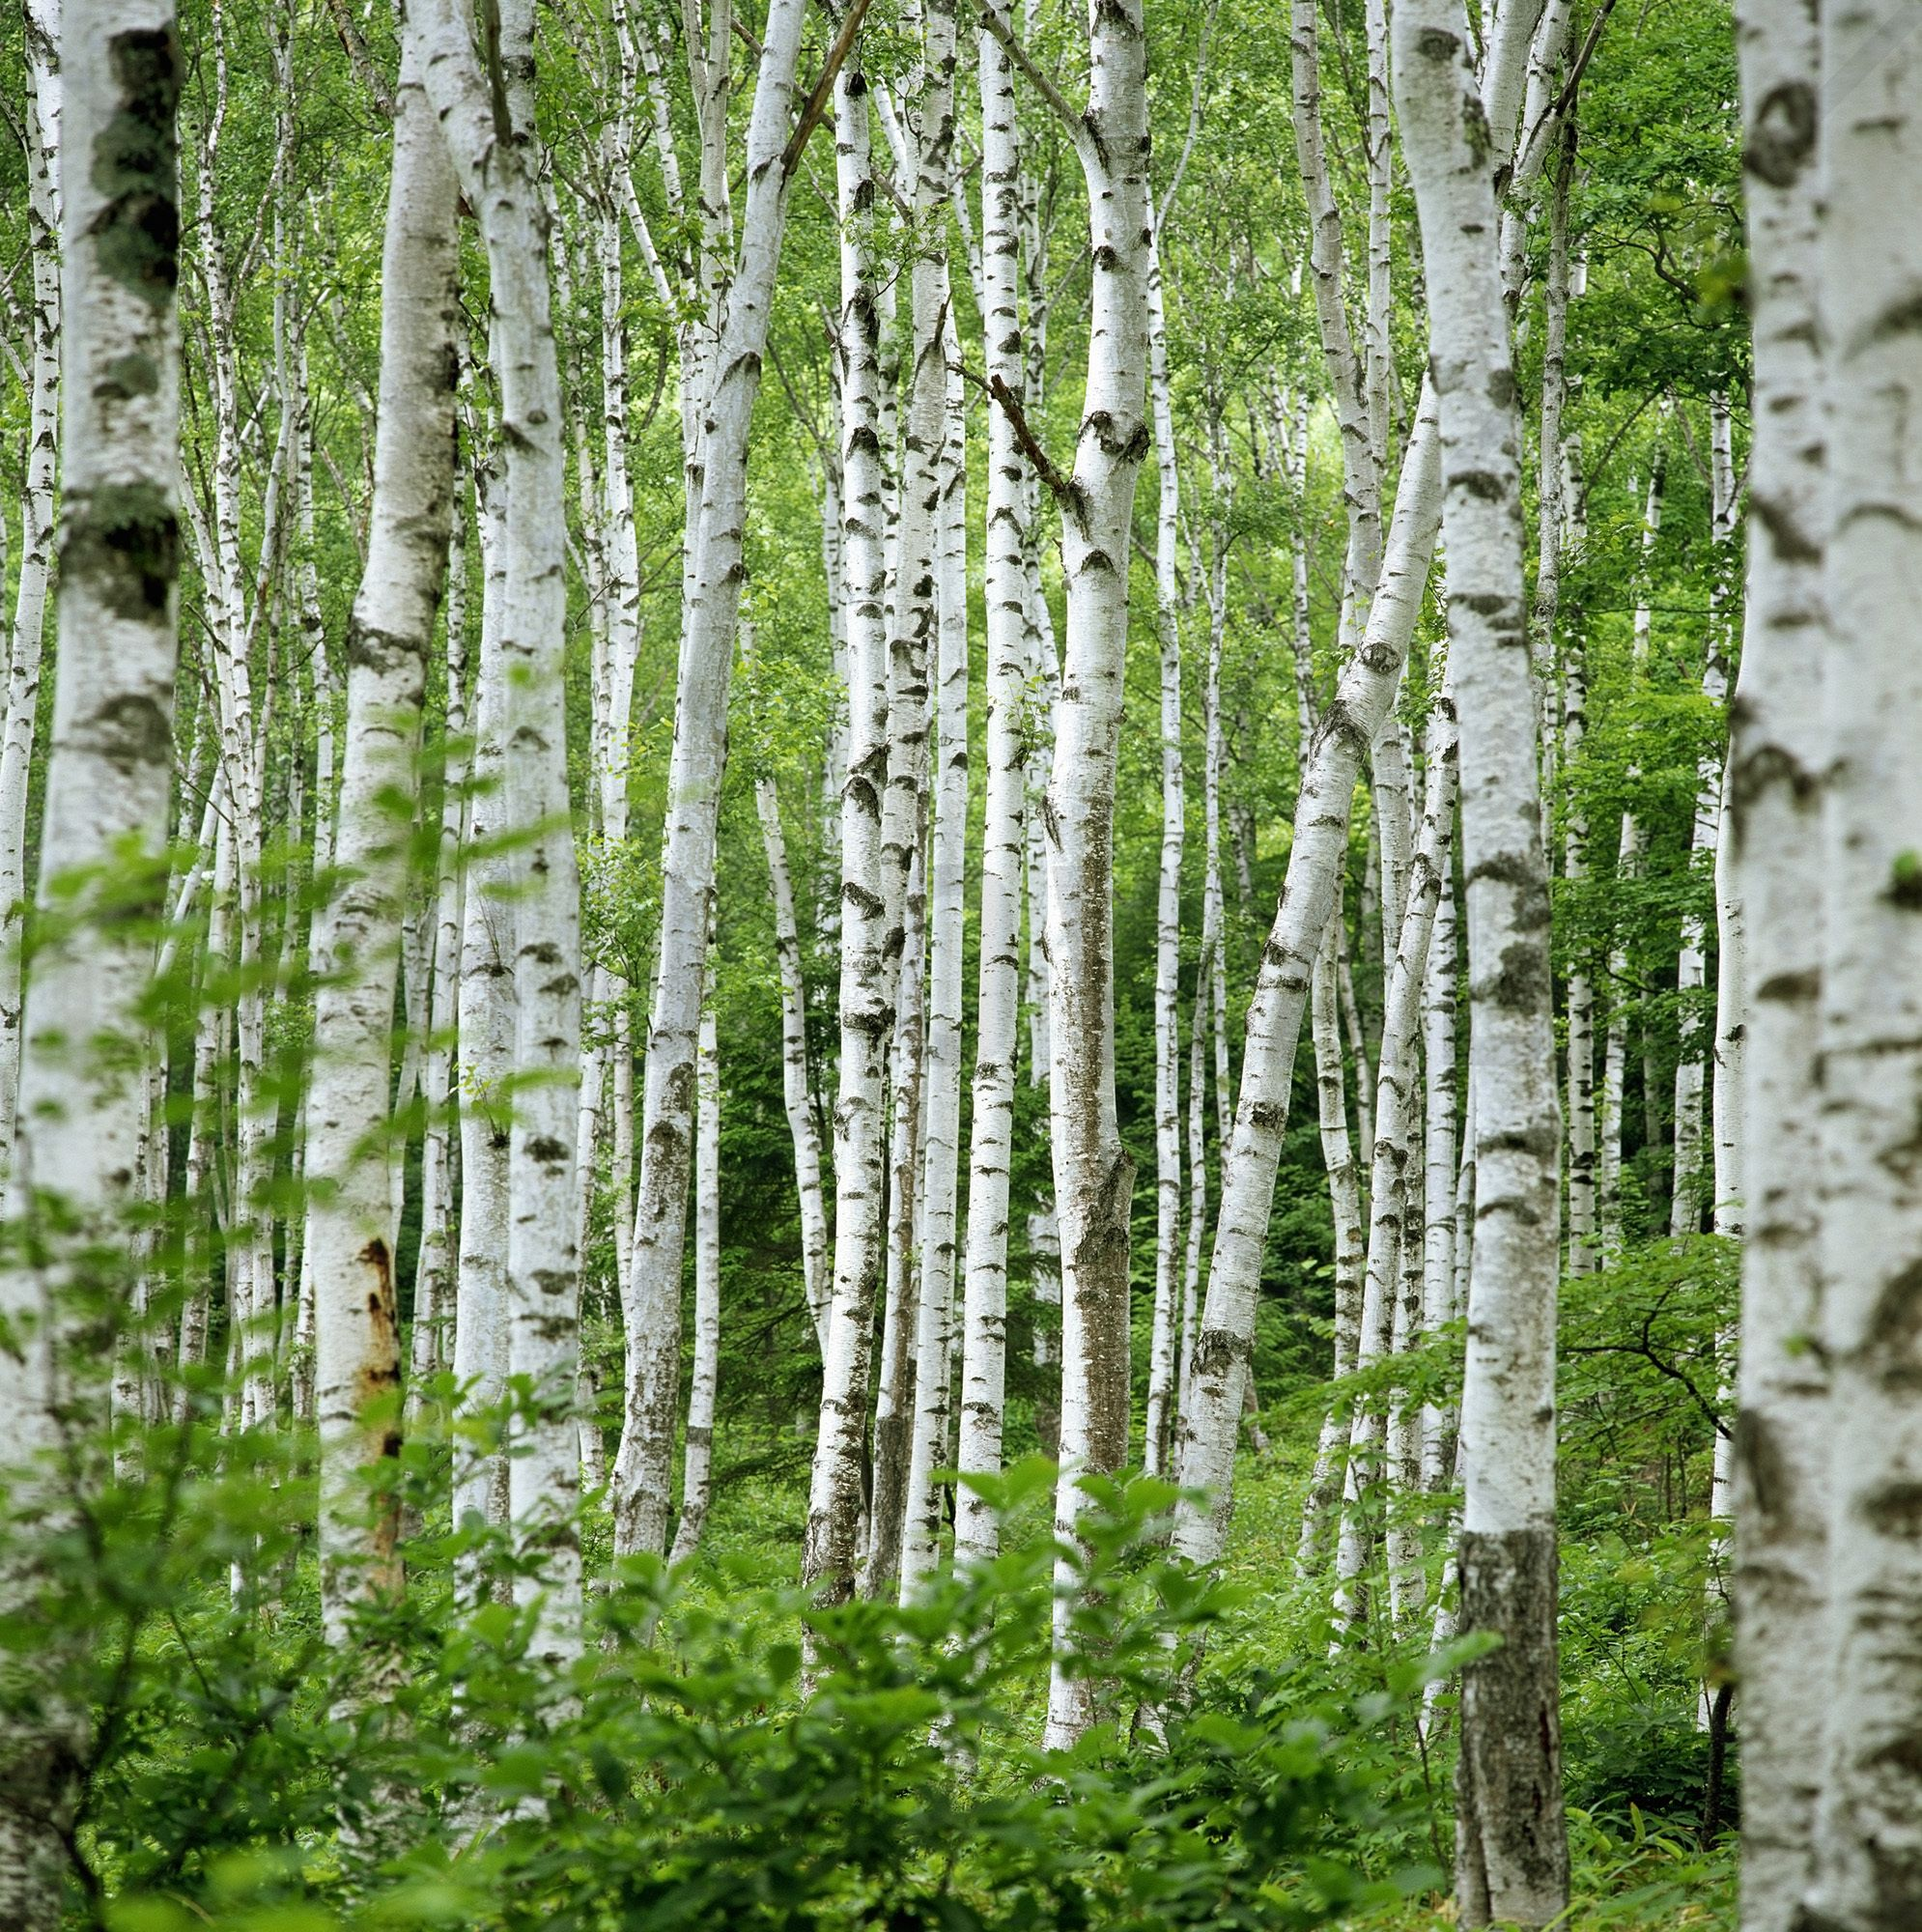 Fototapete Wald Birke Summer Birch Trees Fototapeten Tapeten Photowall